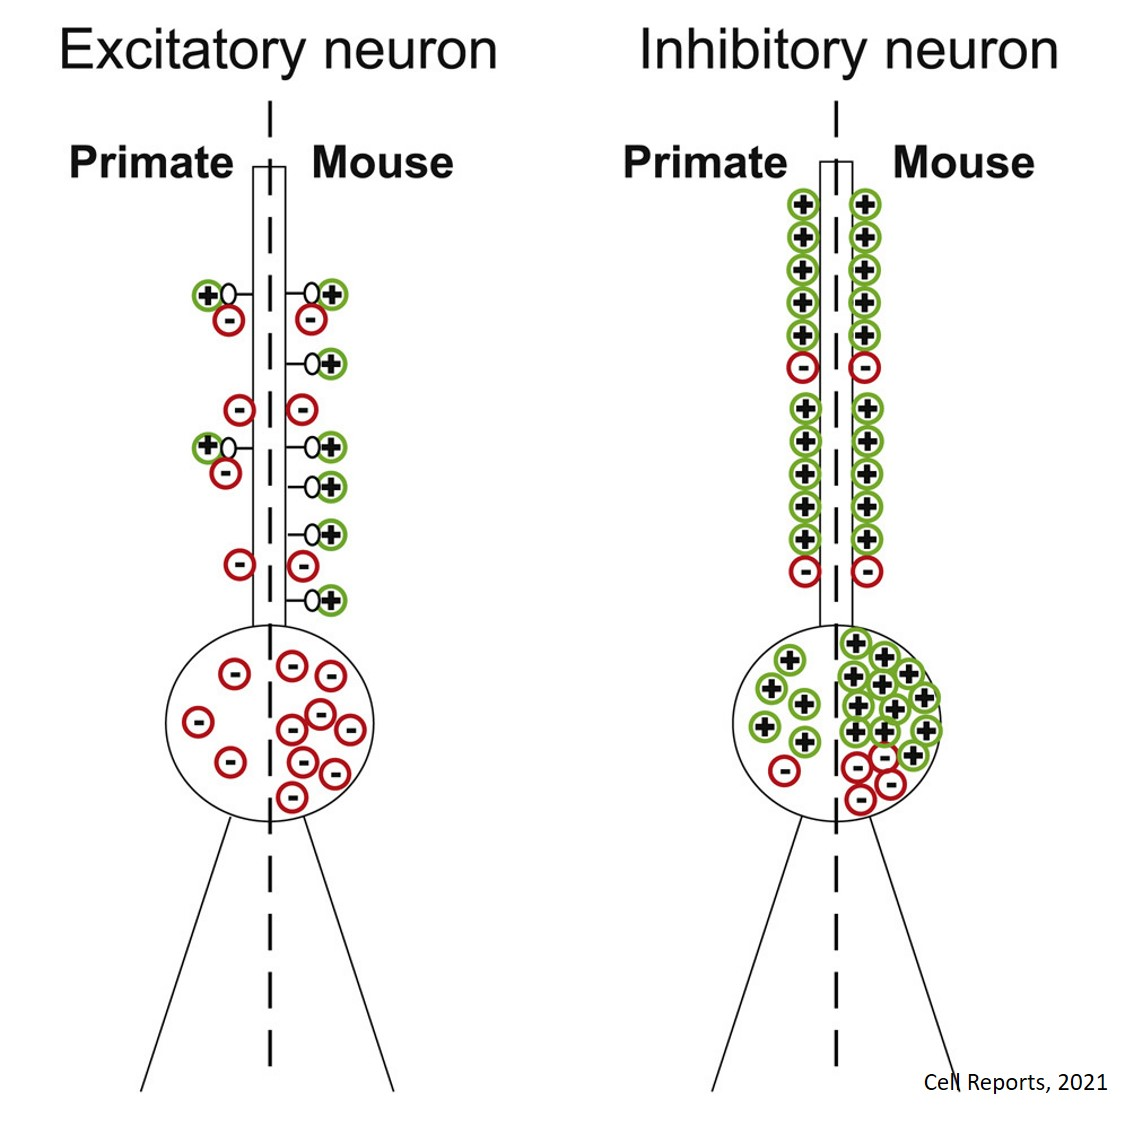 Primate neurons have fewer synapses than mice in visual cortex